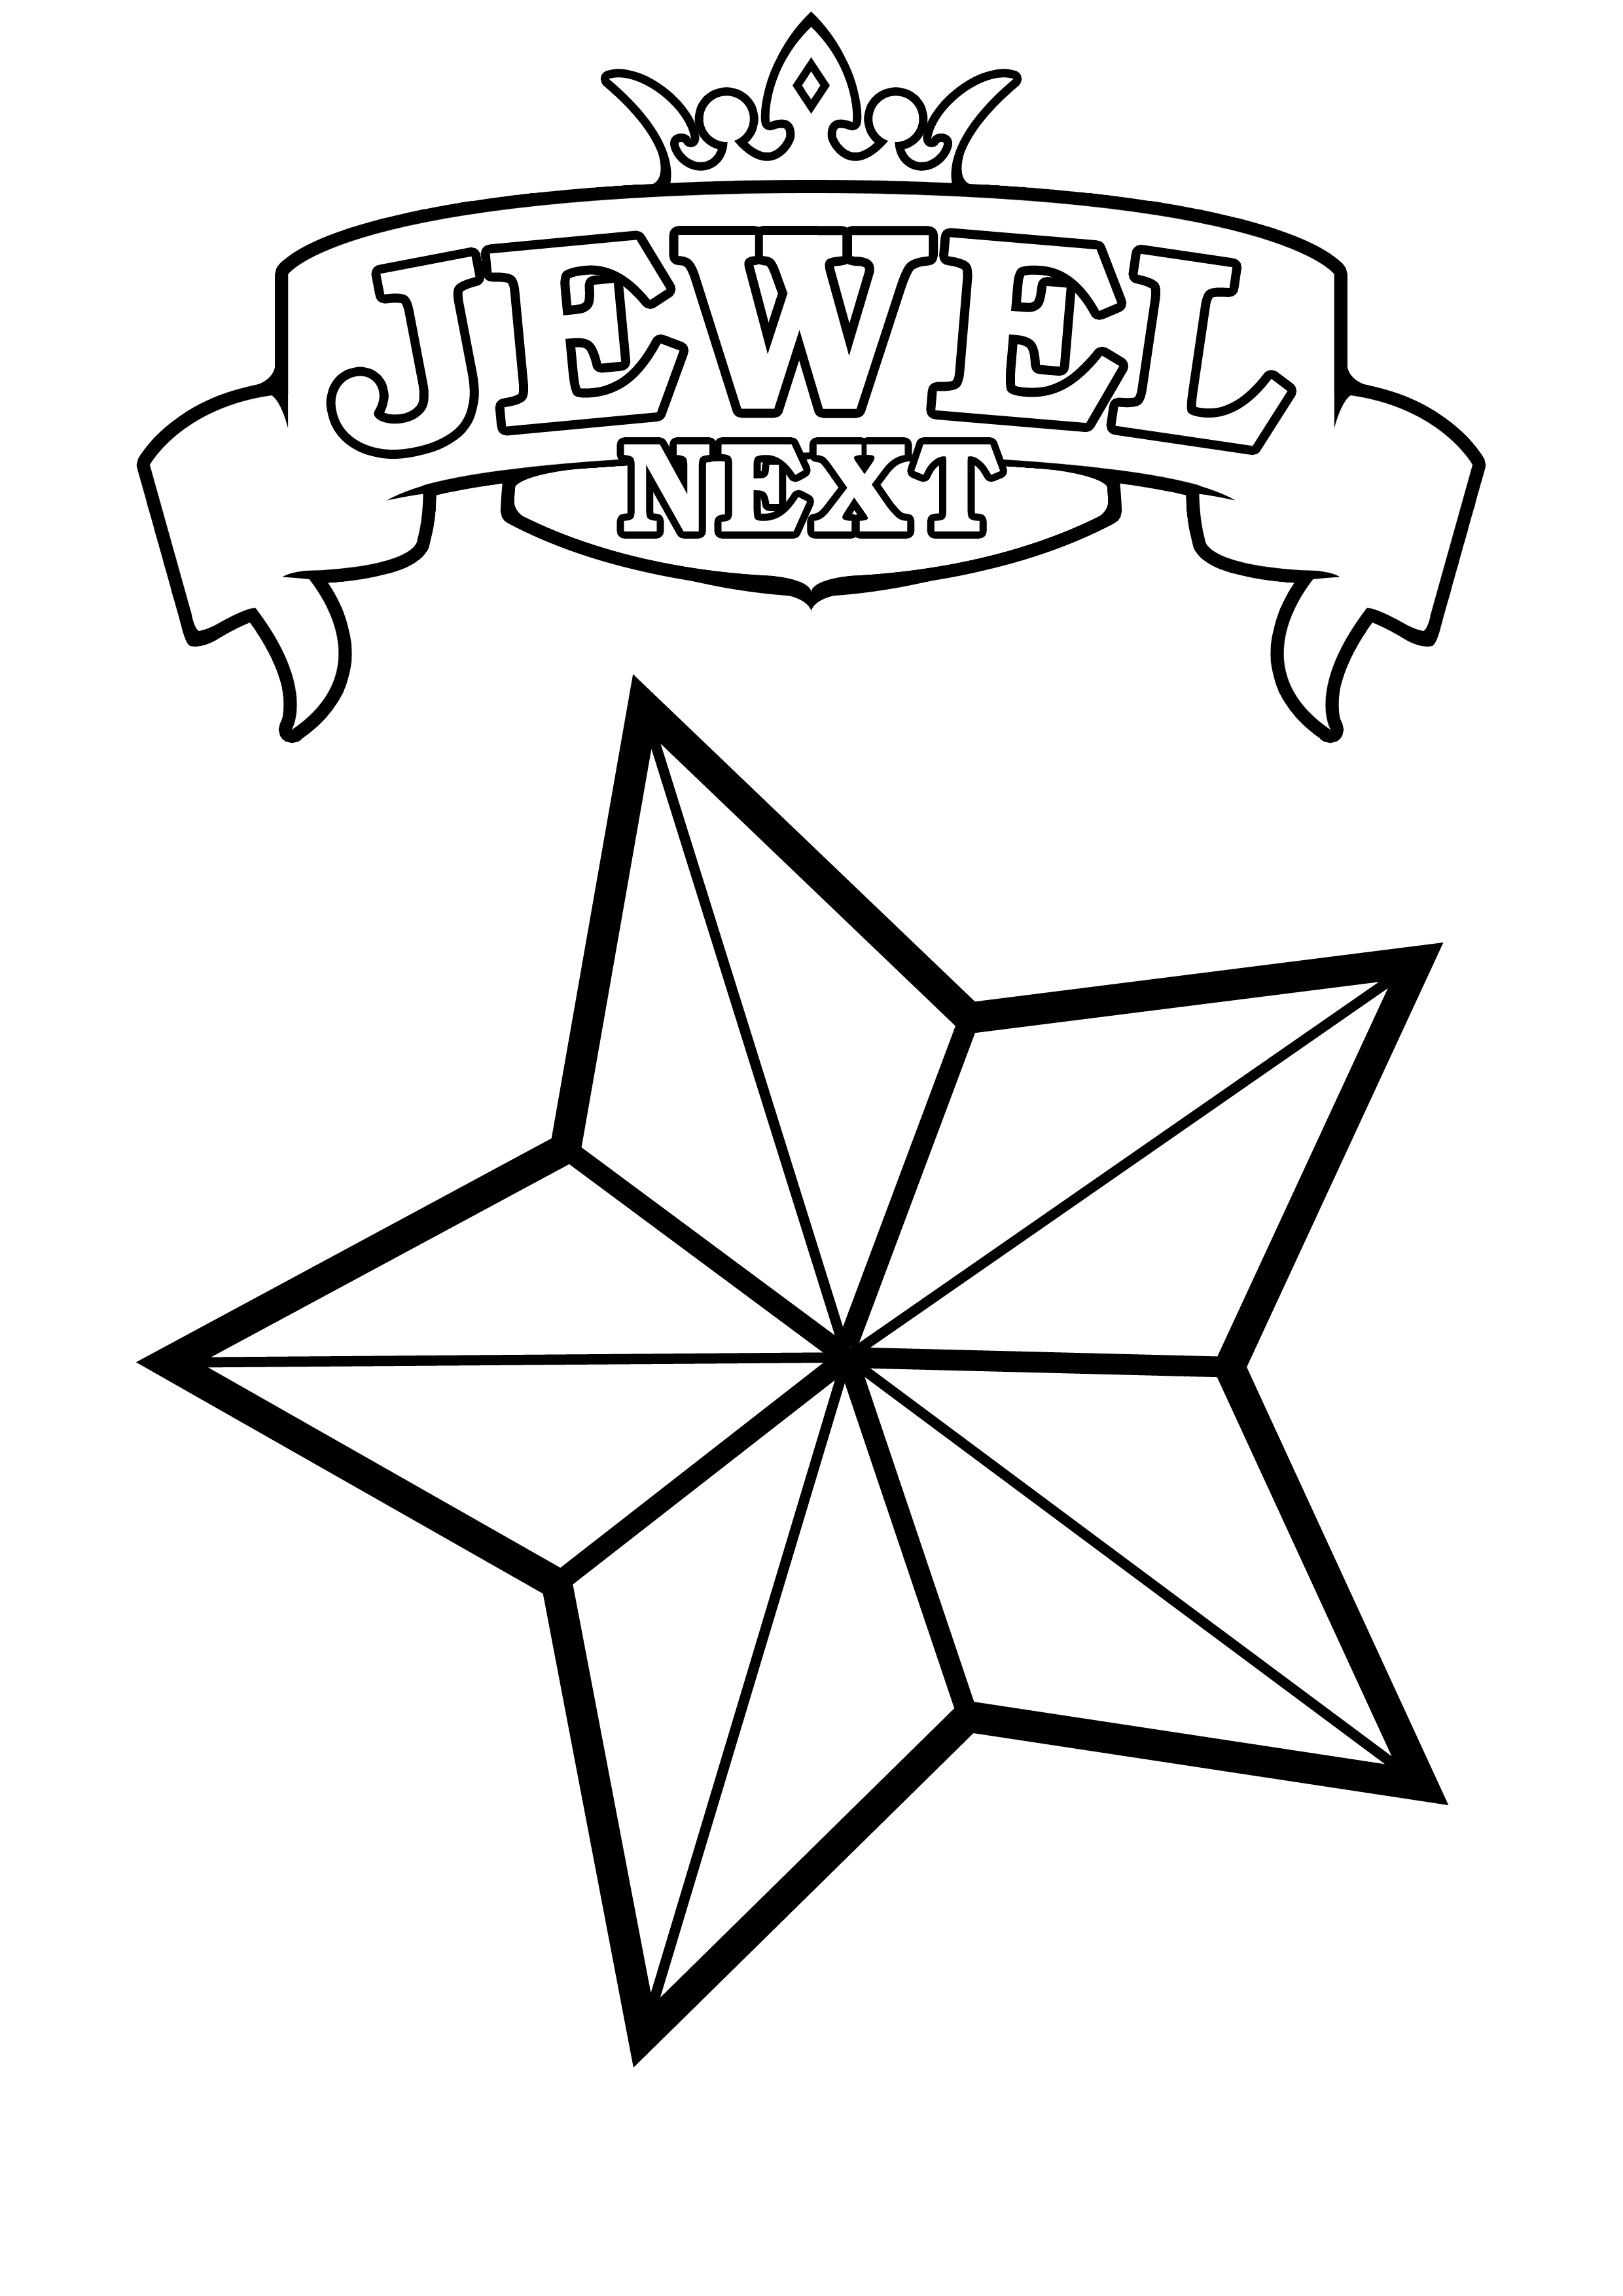 Coloring pages of stars